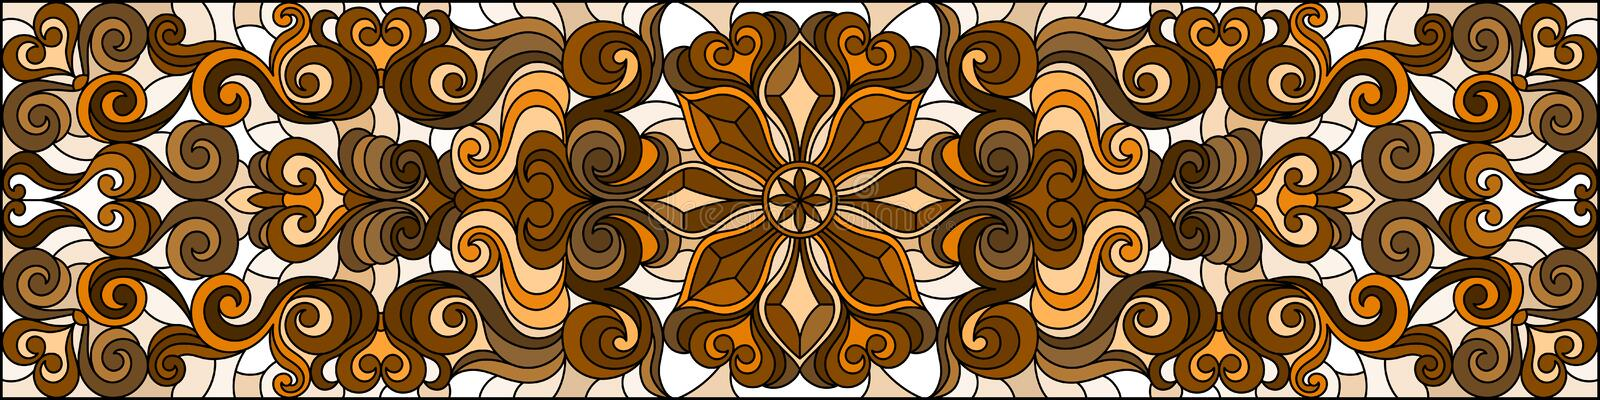 Stained glass illustration with  abstract flowers, swirls and leaves  on a light background,horizontal orientation, sepia. Illustration in stained glass style royalty free illustration